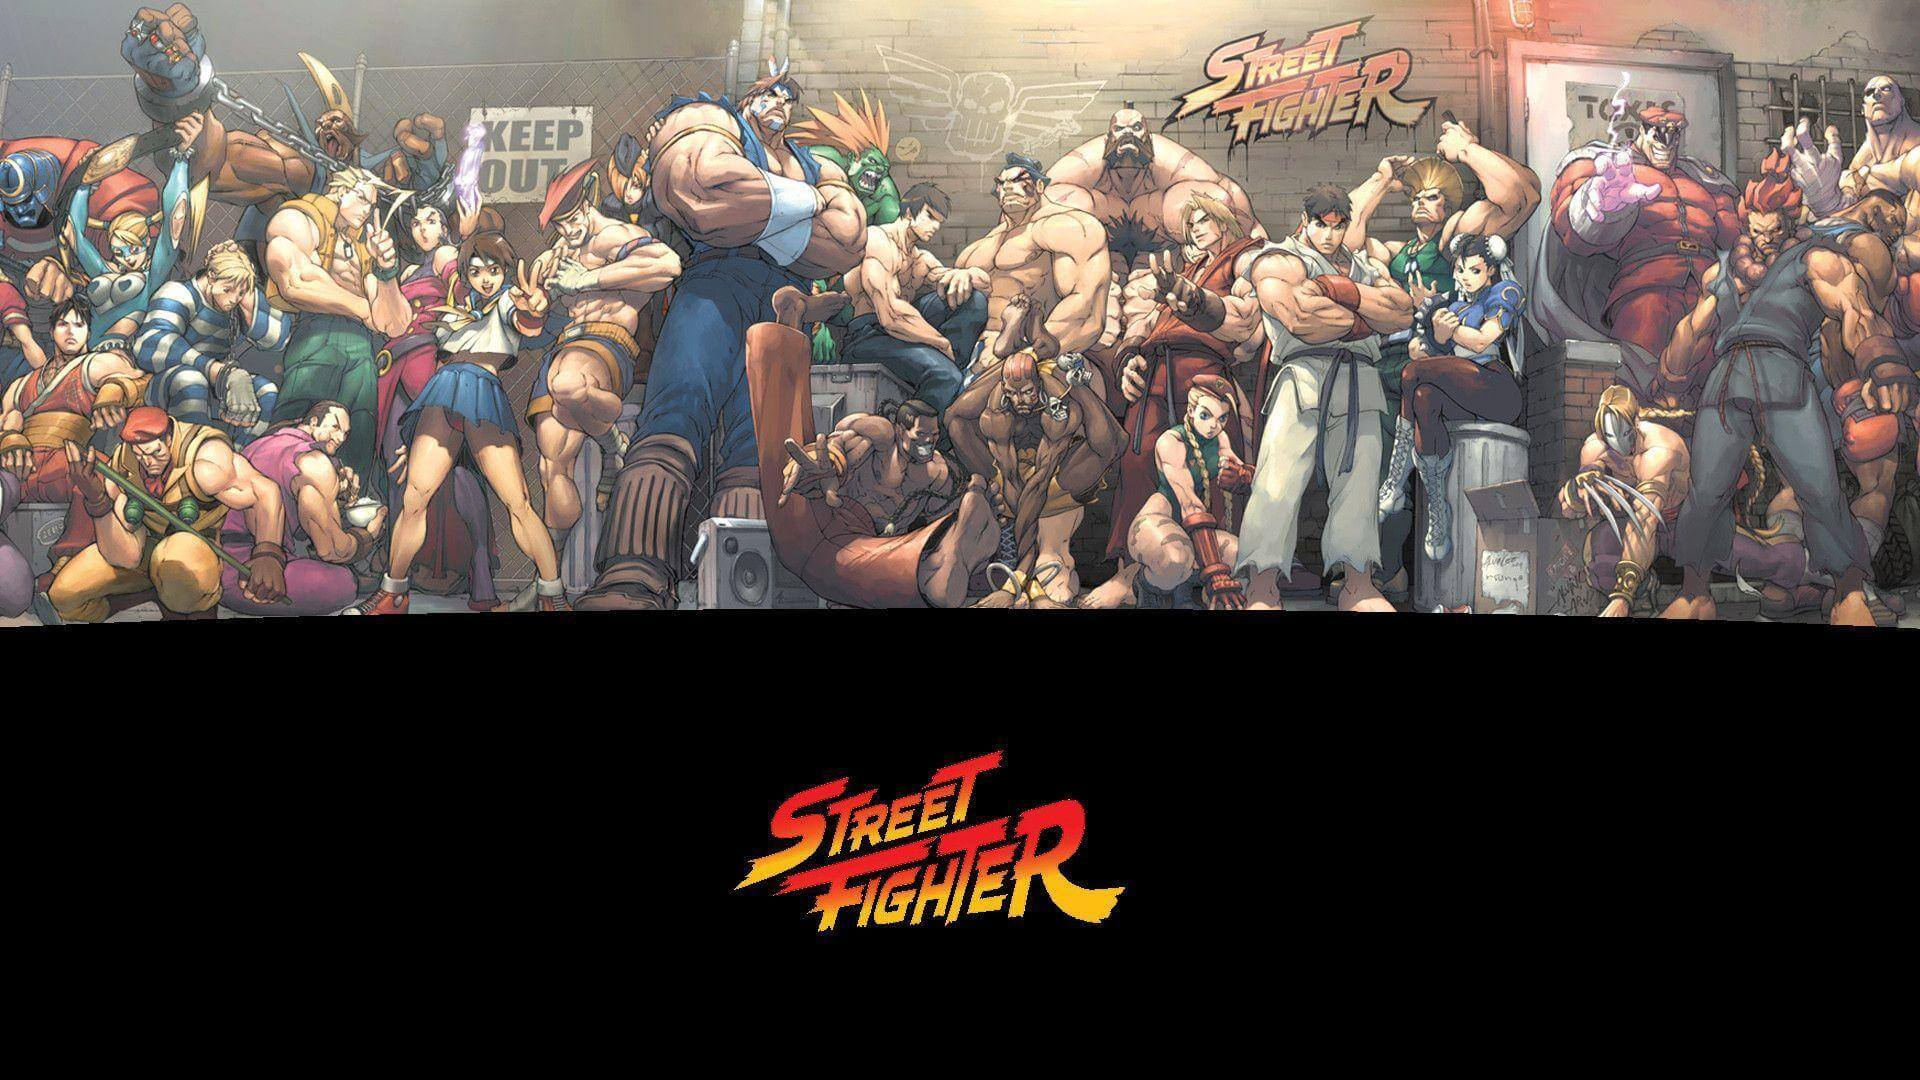 Capcom's Street fighter franchise will have a movie again